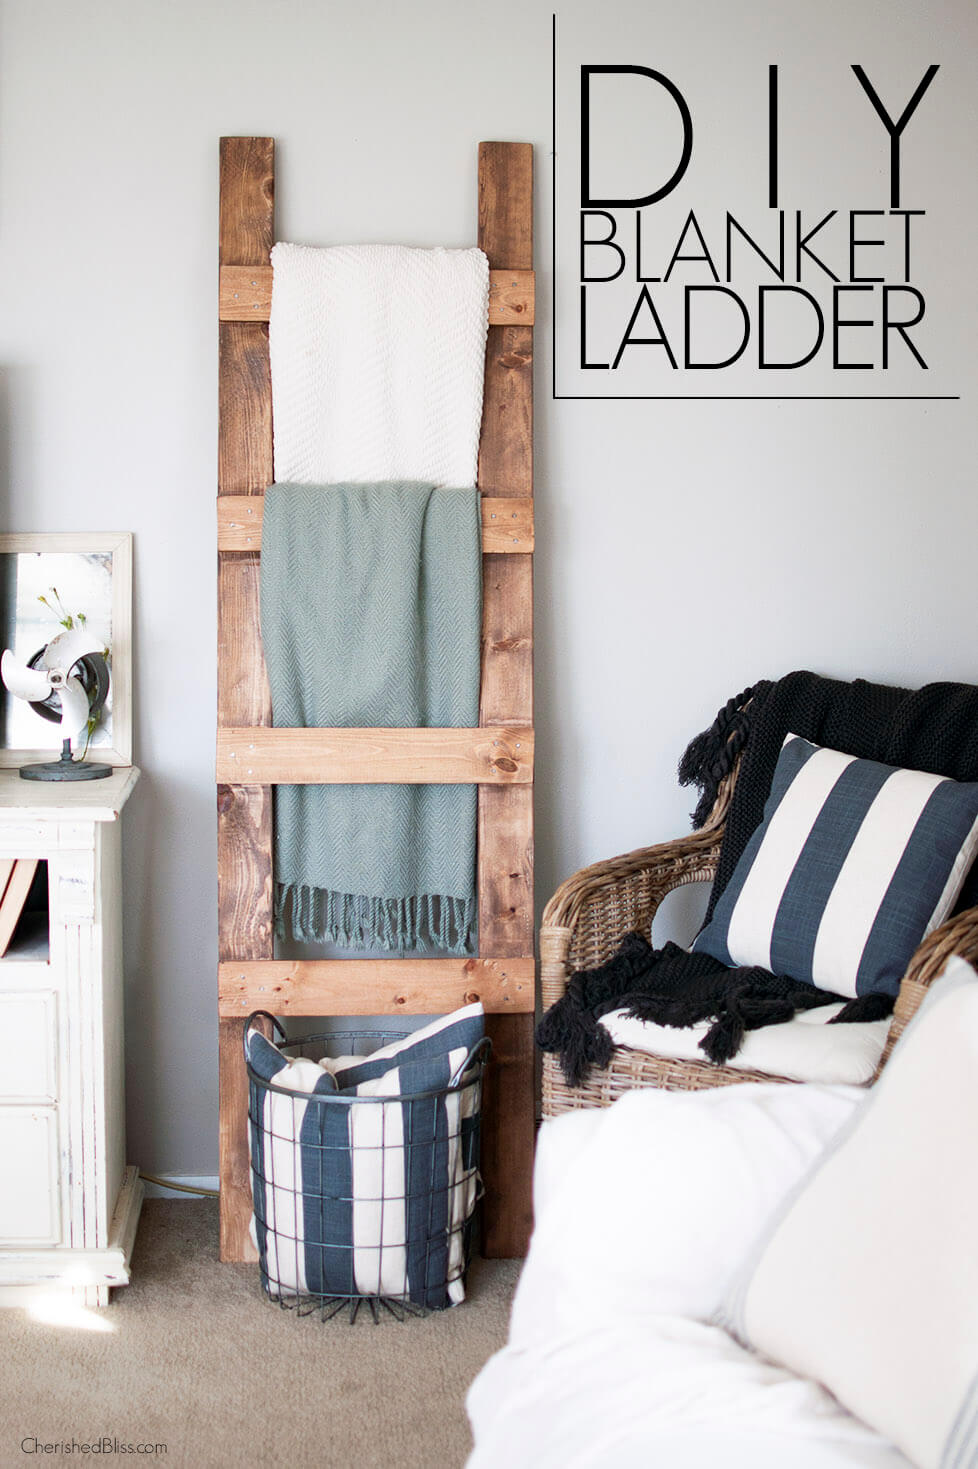 DIY Living Room Decorating Ideas With Ladders